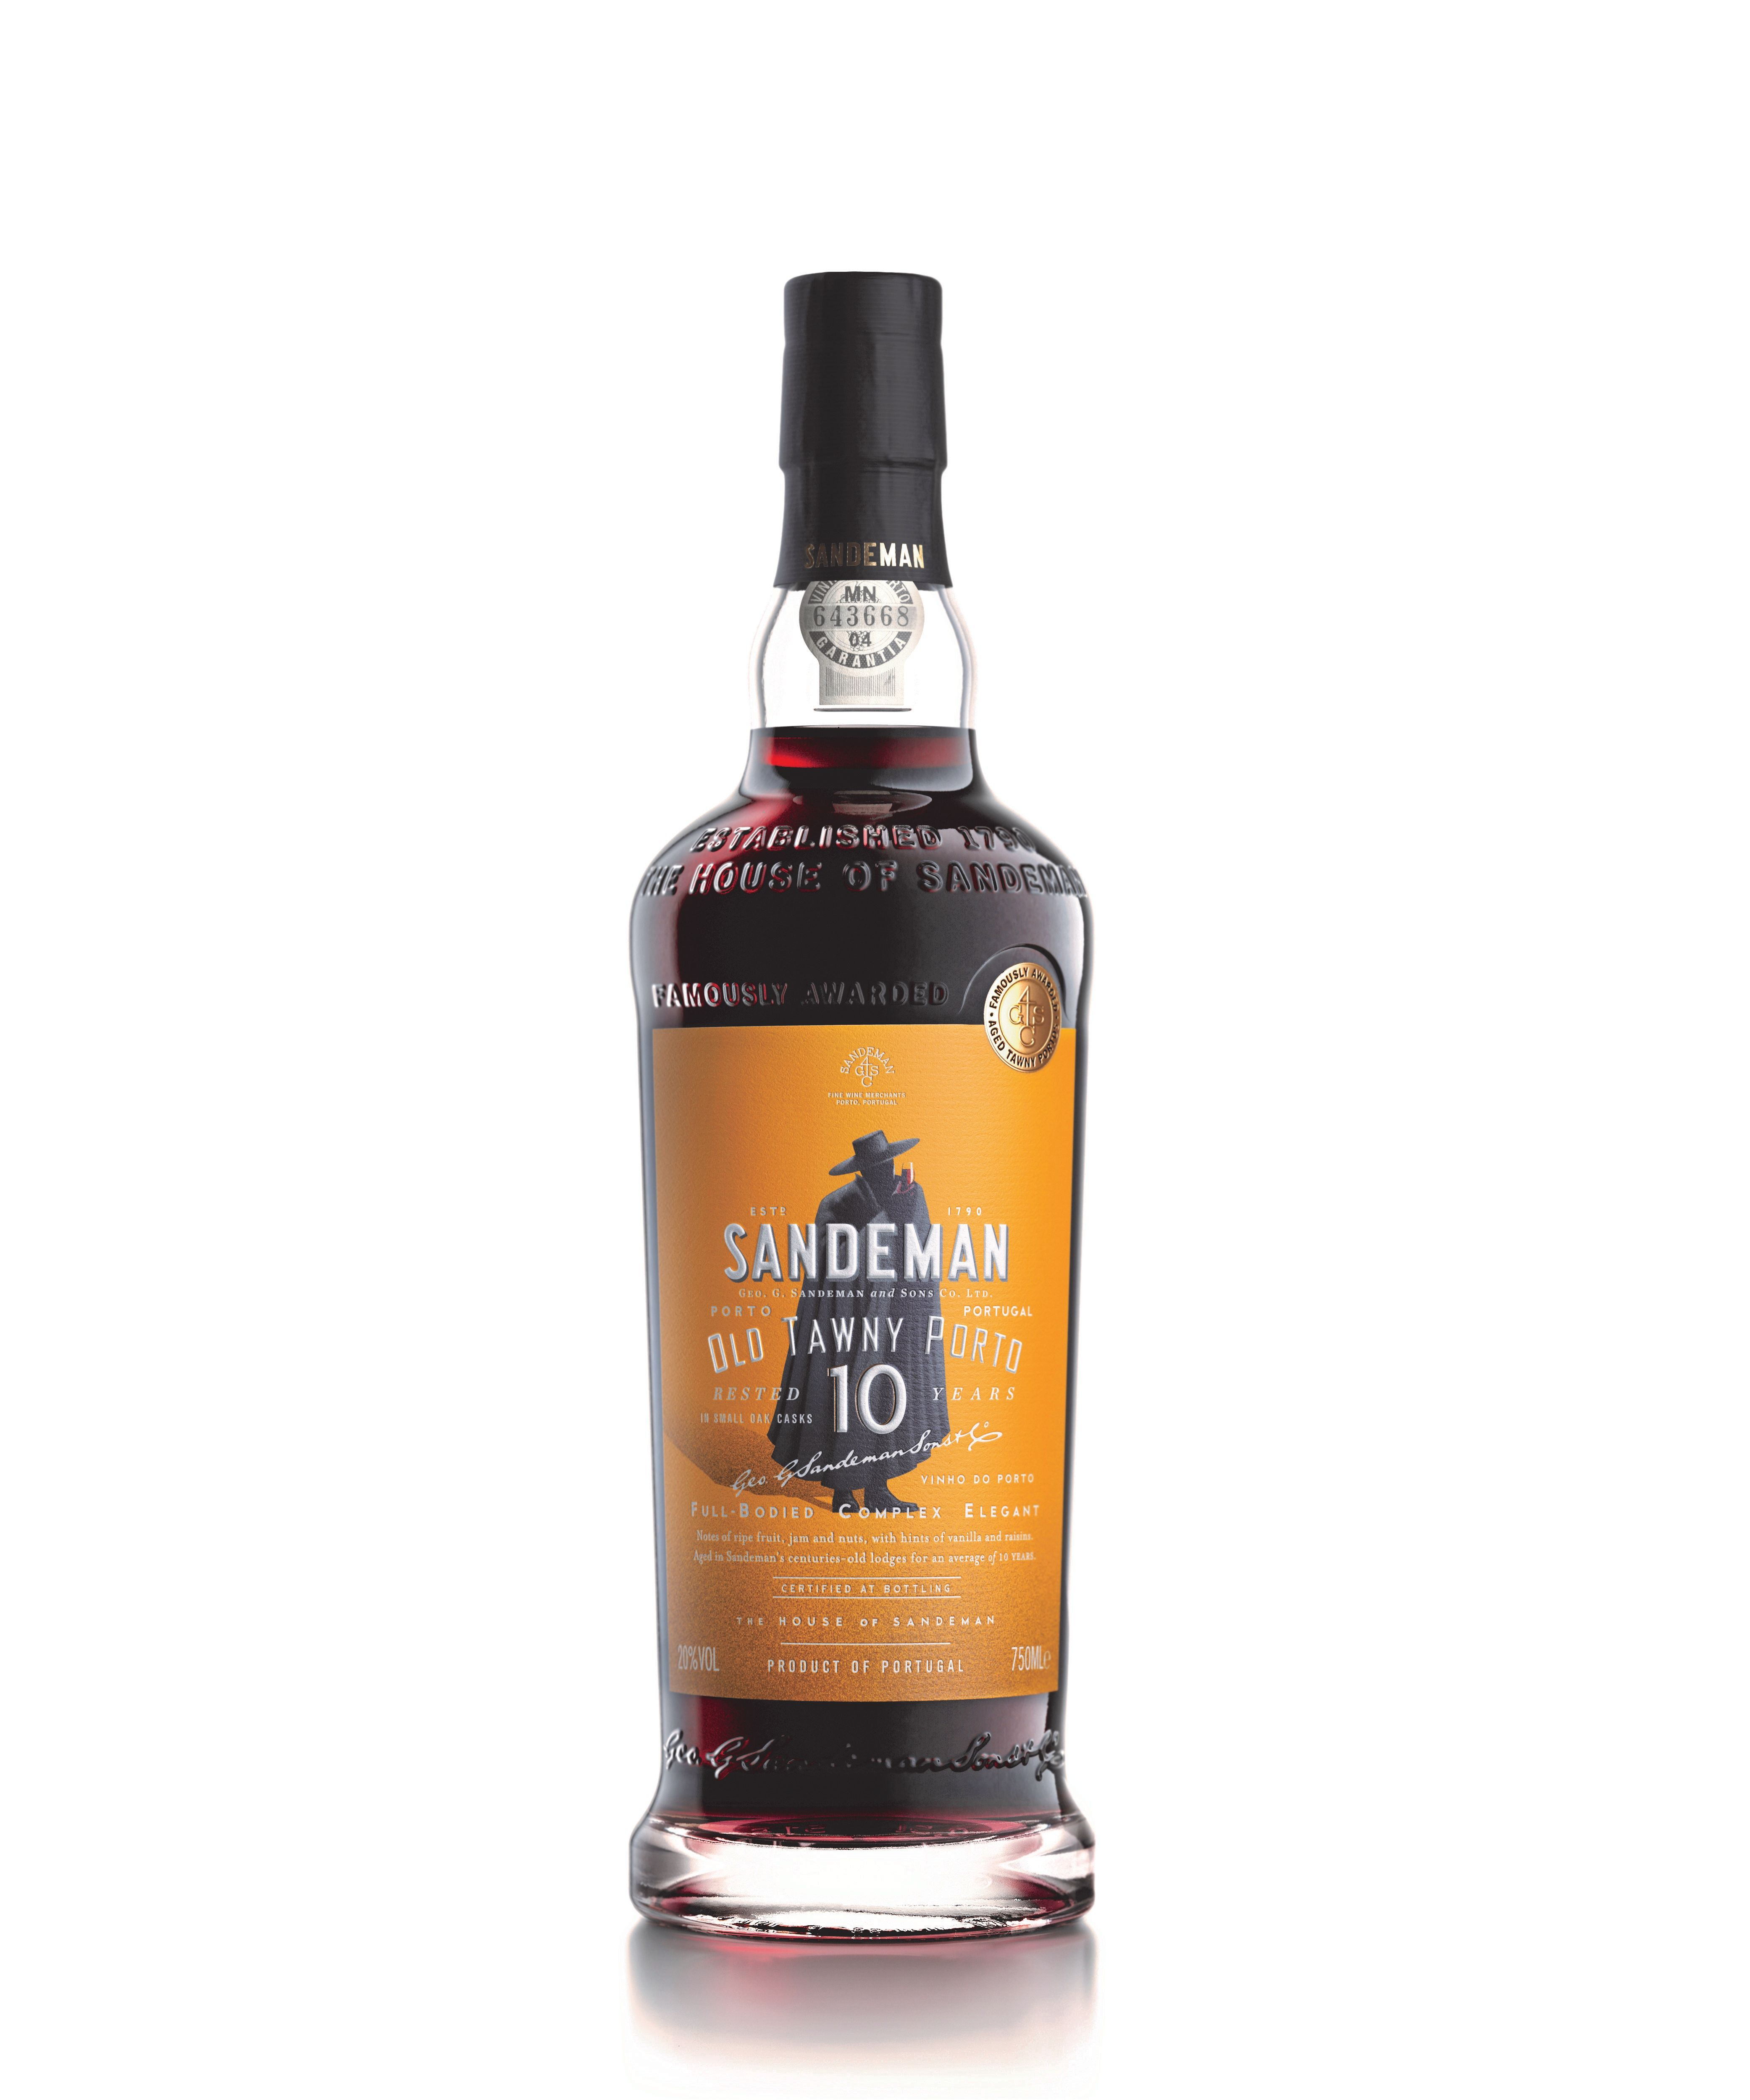 Sandeman 10 Year Old Tawny  Front Bottle Shot